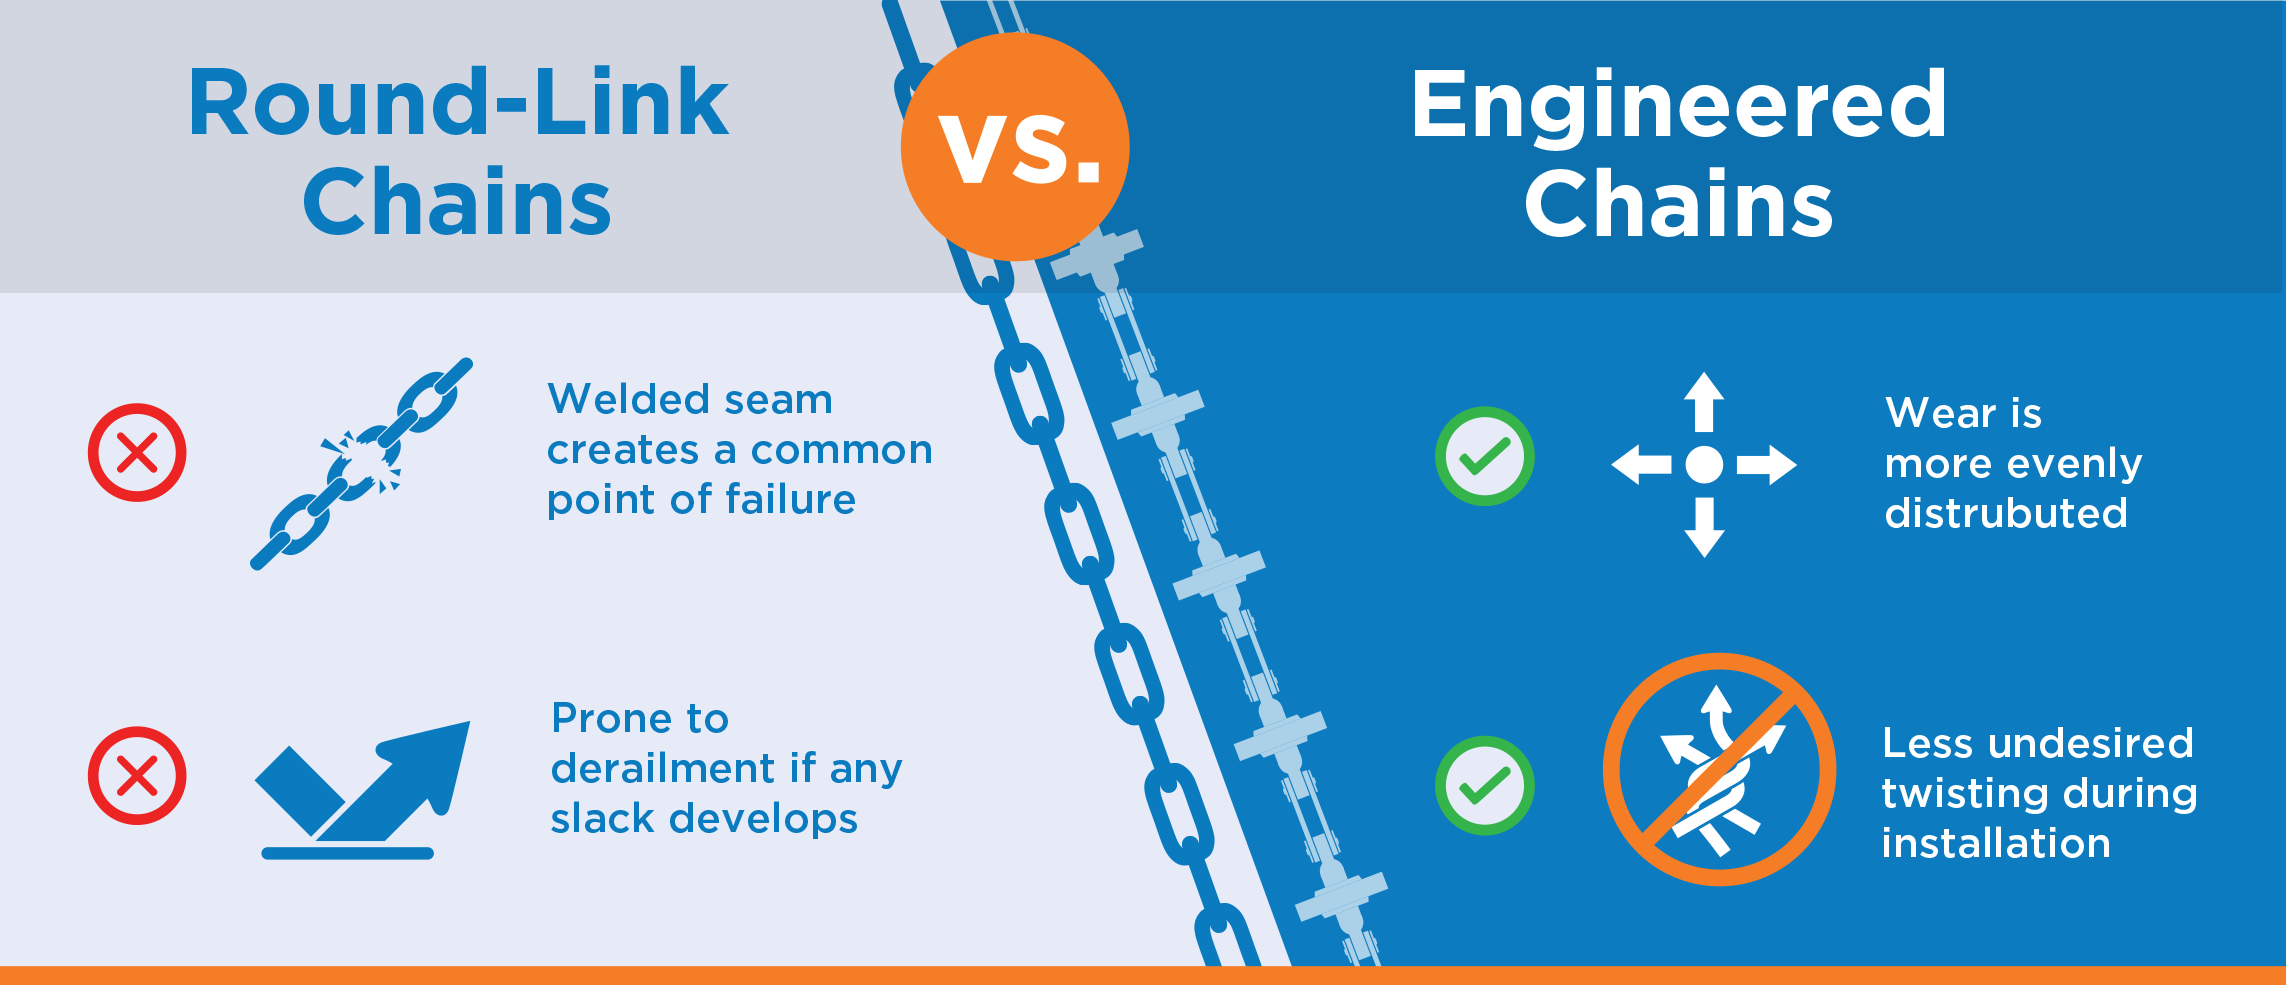 White Paper: The Case for Engineered Chains Over Round-Link Chains | Hapman.com